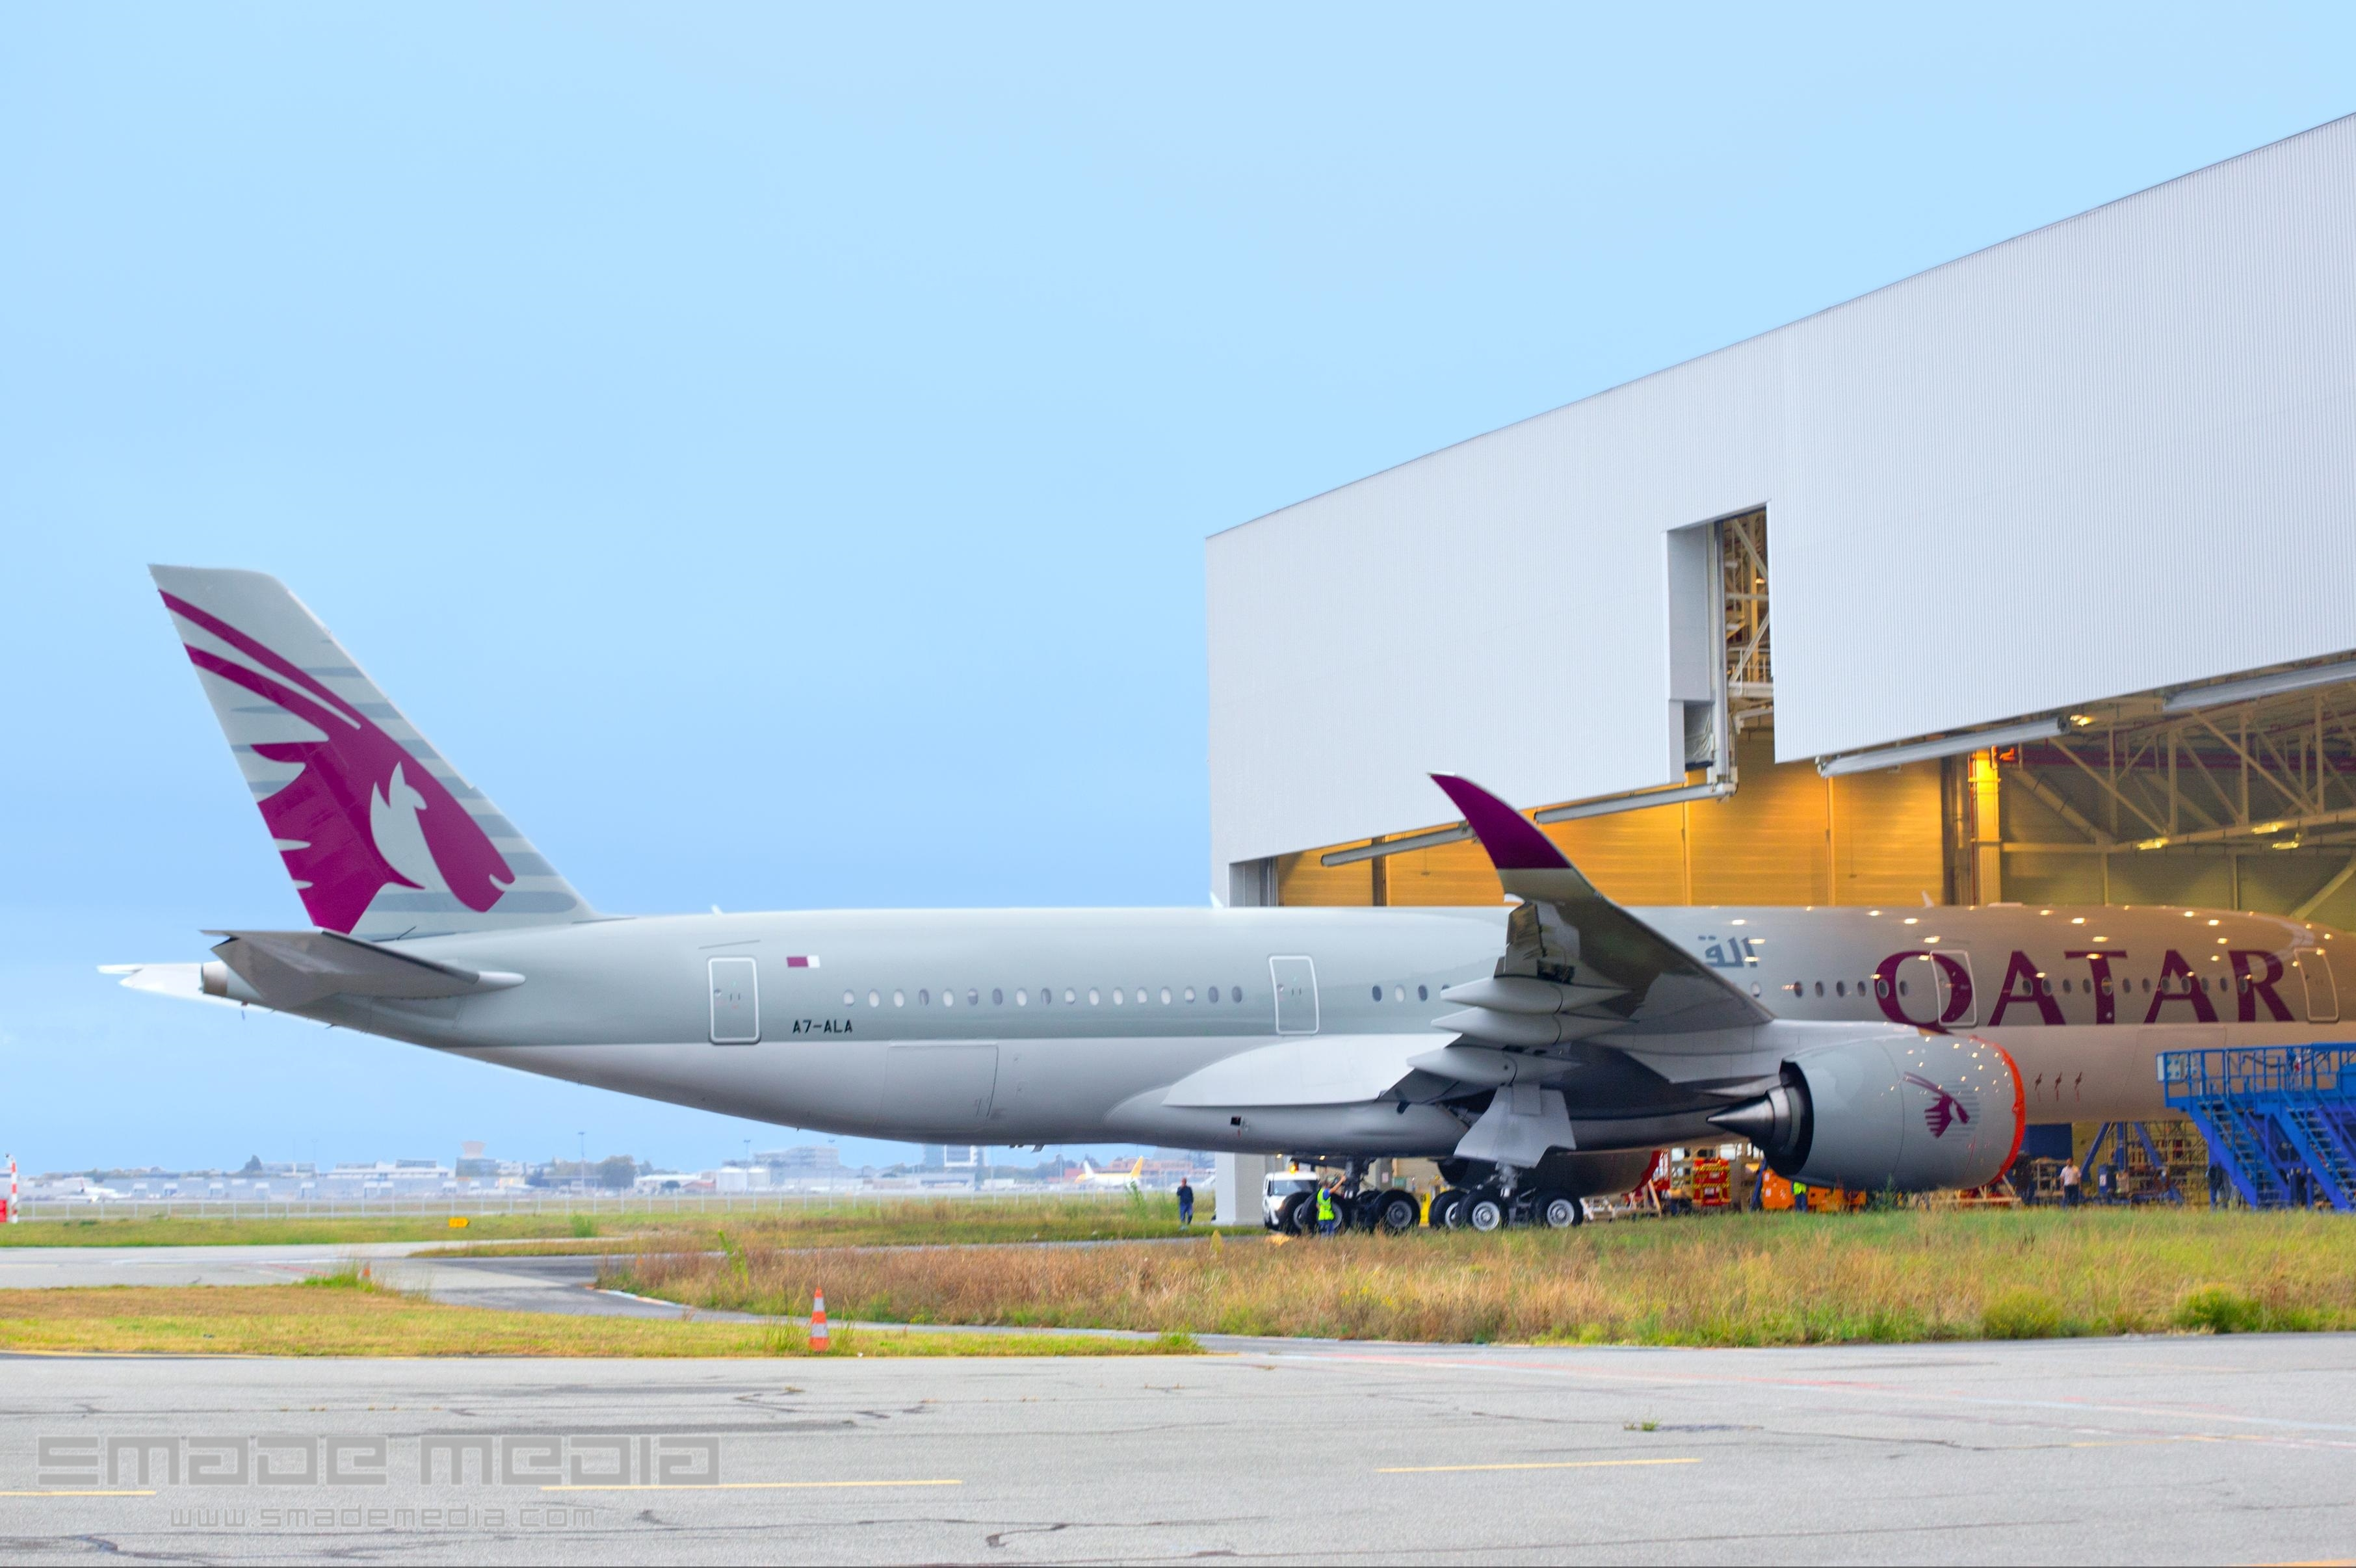 QATAR A350 Roll Out AND First Flight - SMADE MEDIA (2)